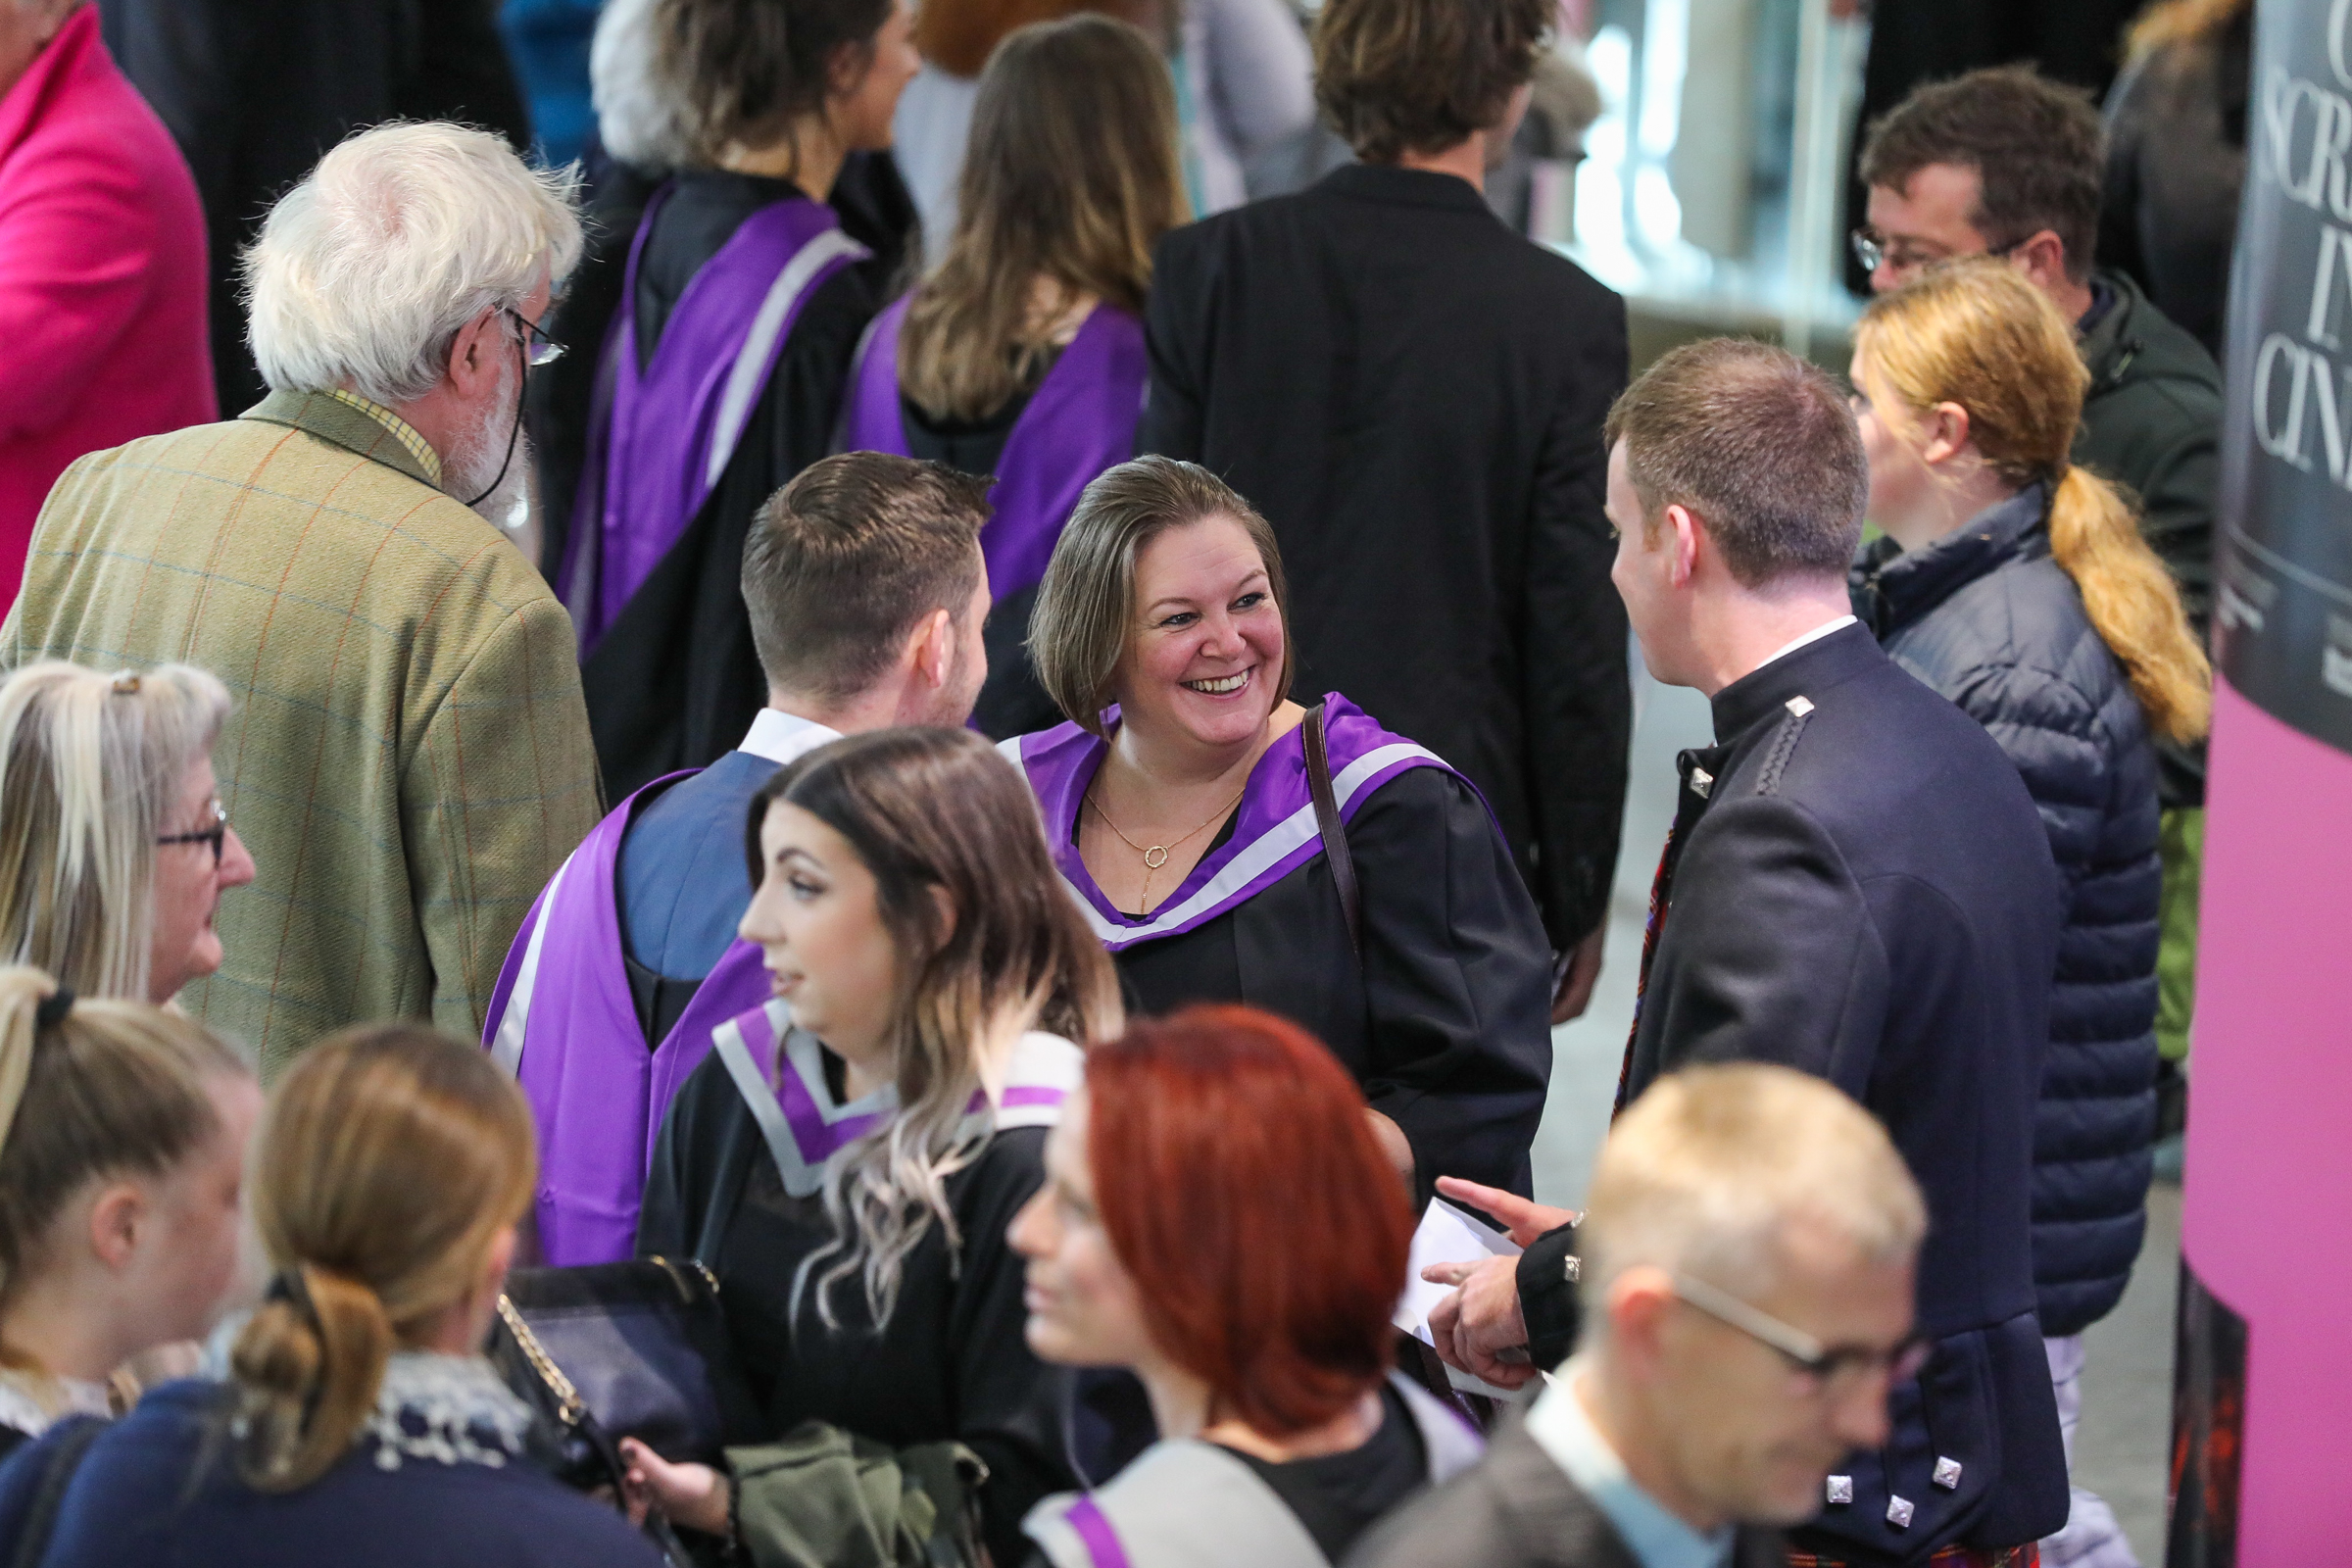 UHI Graduation. Eden Court, Inverness